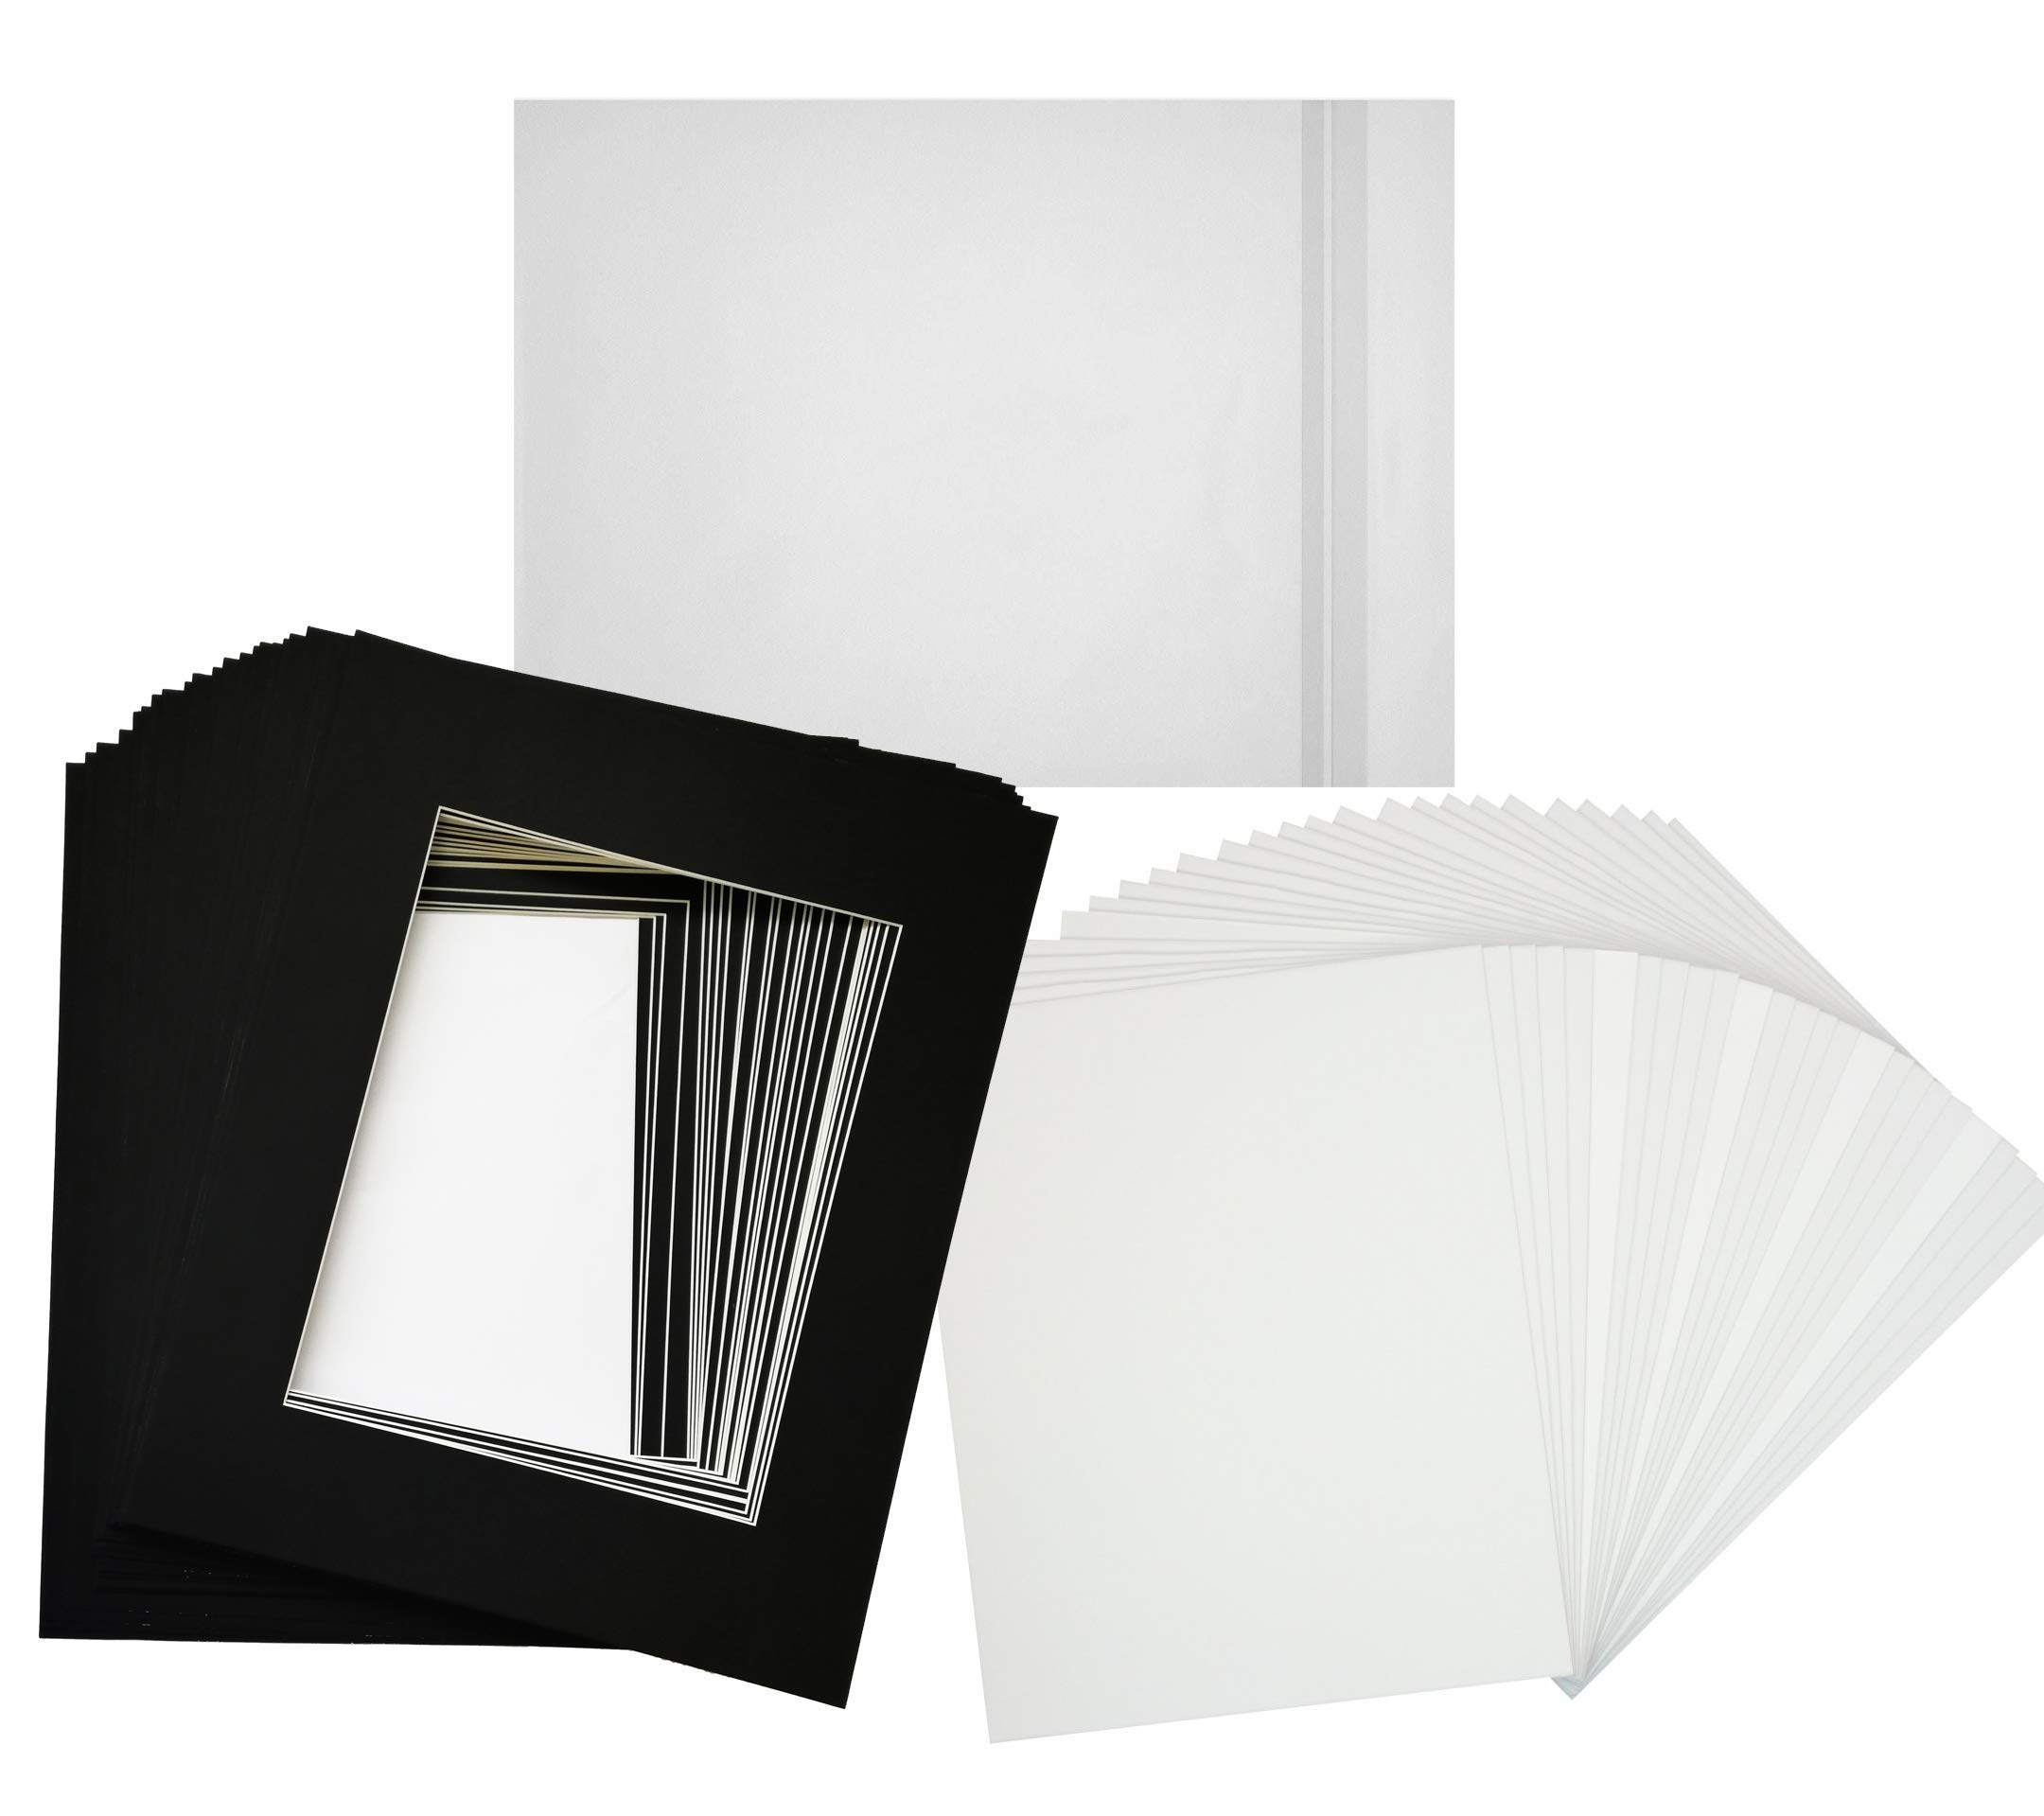 Hall of Frame Pack of 25 16x20 Black Picture Mats with White Core Bevel Cut for 11x14 Picture Opening, 25 4ply White Backings, 25 White Clear Bags (Packed Separately in 1 Box)